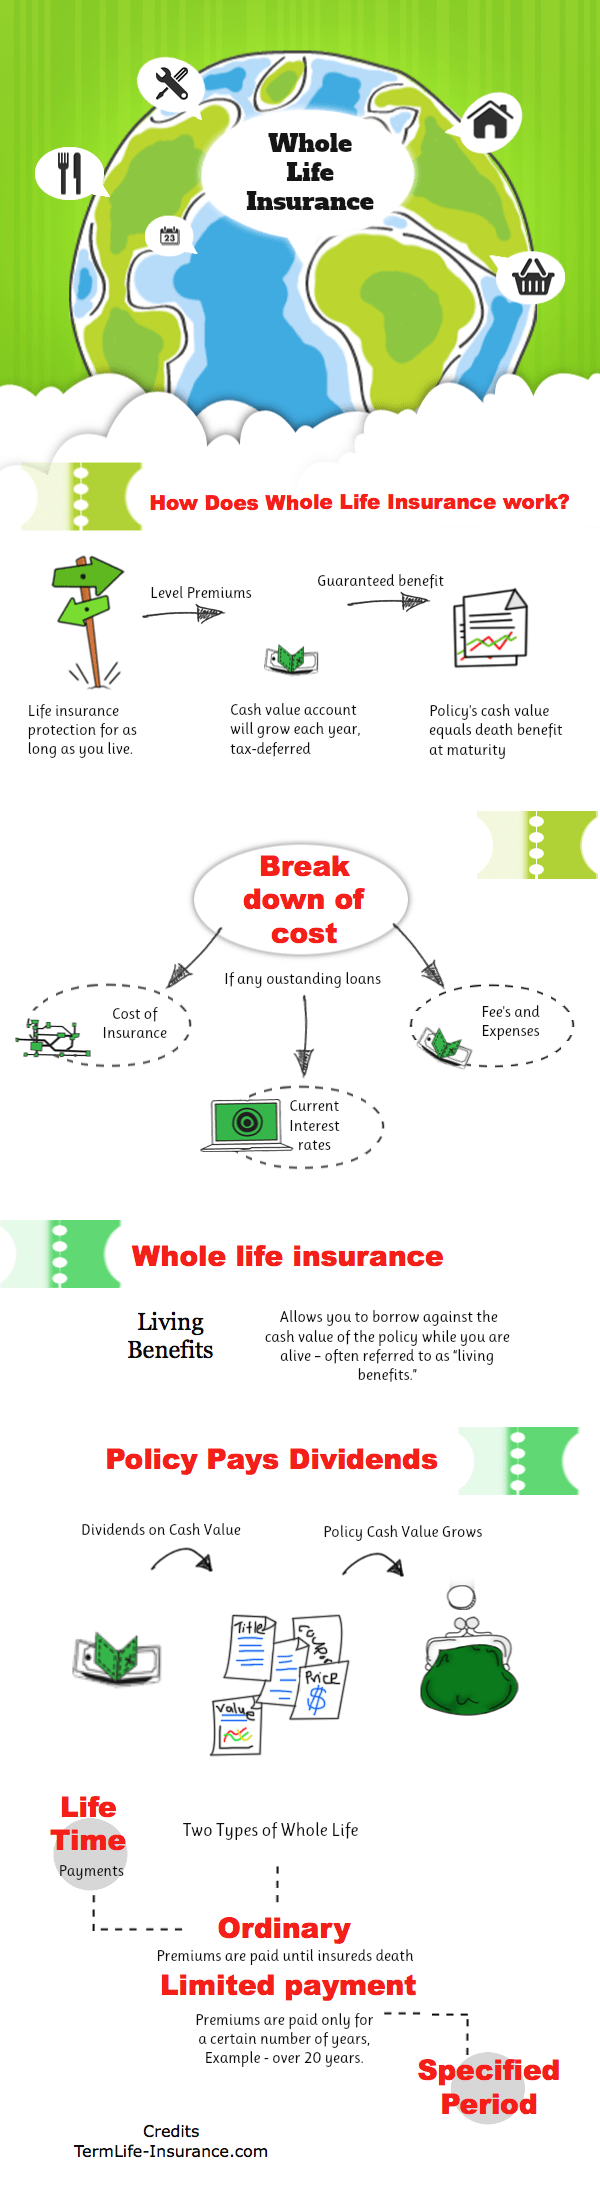 Instant Whole Life Insurance Quotes Adorable Instant Whole Life Insurance Quotesup To $100000 In Coverage.